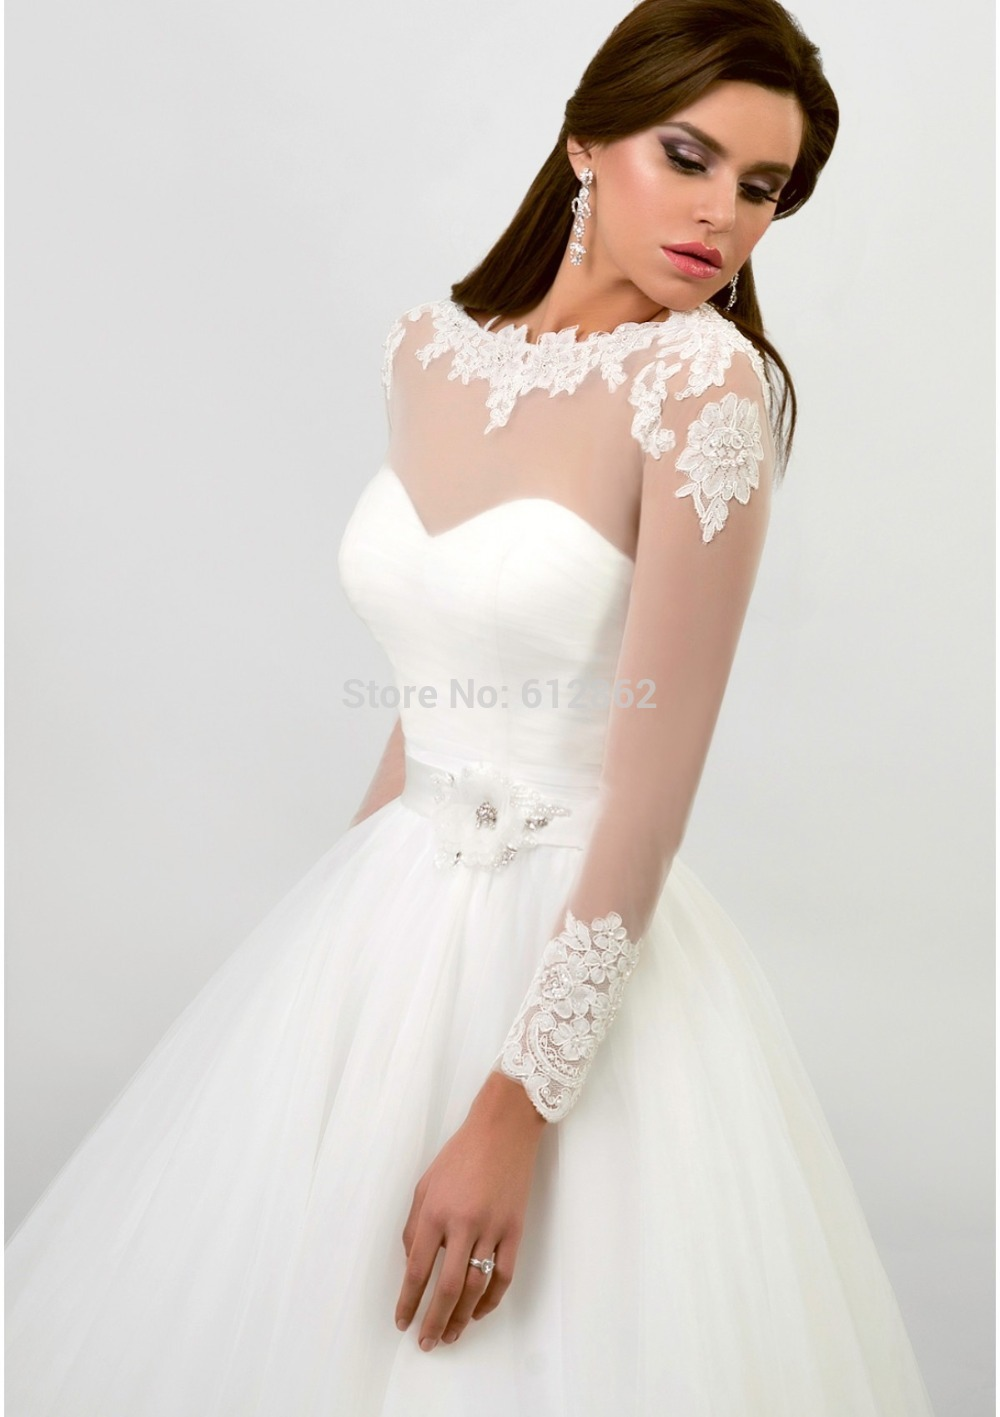 Long Sleeve Ball Gown Long Train Simple Elegant Wedding Gowns-in Wedding  Dresses from Weddings   Events on Aliexpress.com  75619a4d061a